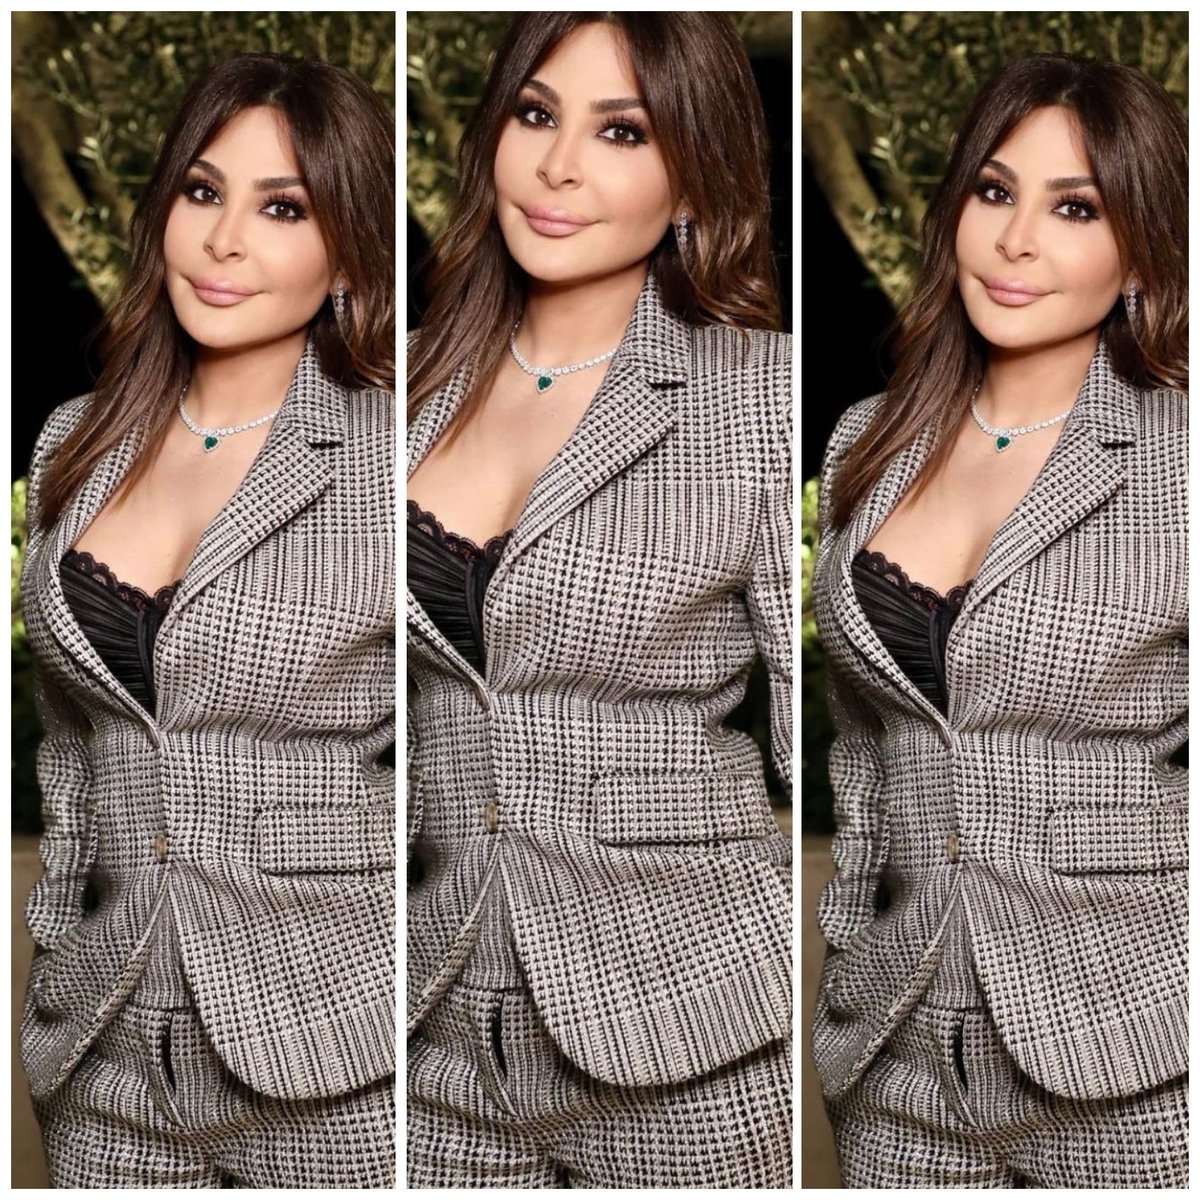 Replying to @BrahimElissian: The Gorgeous @elissakh 🖤